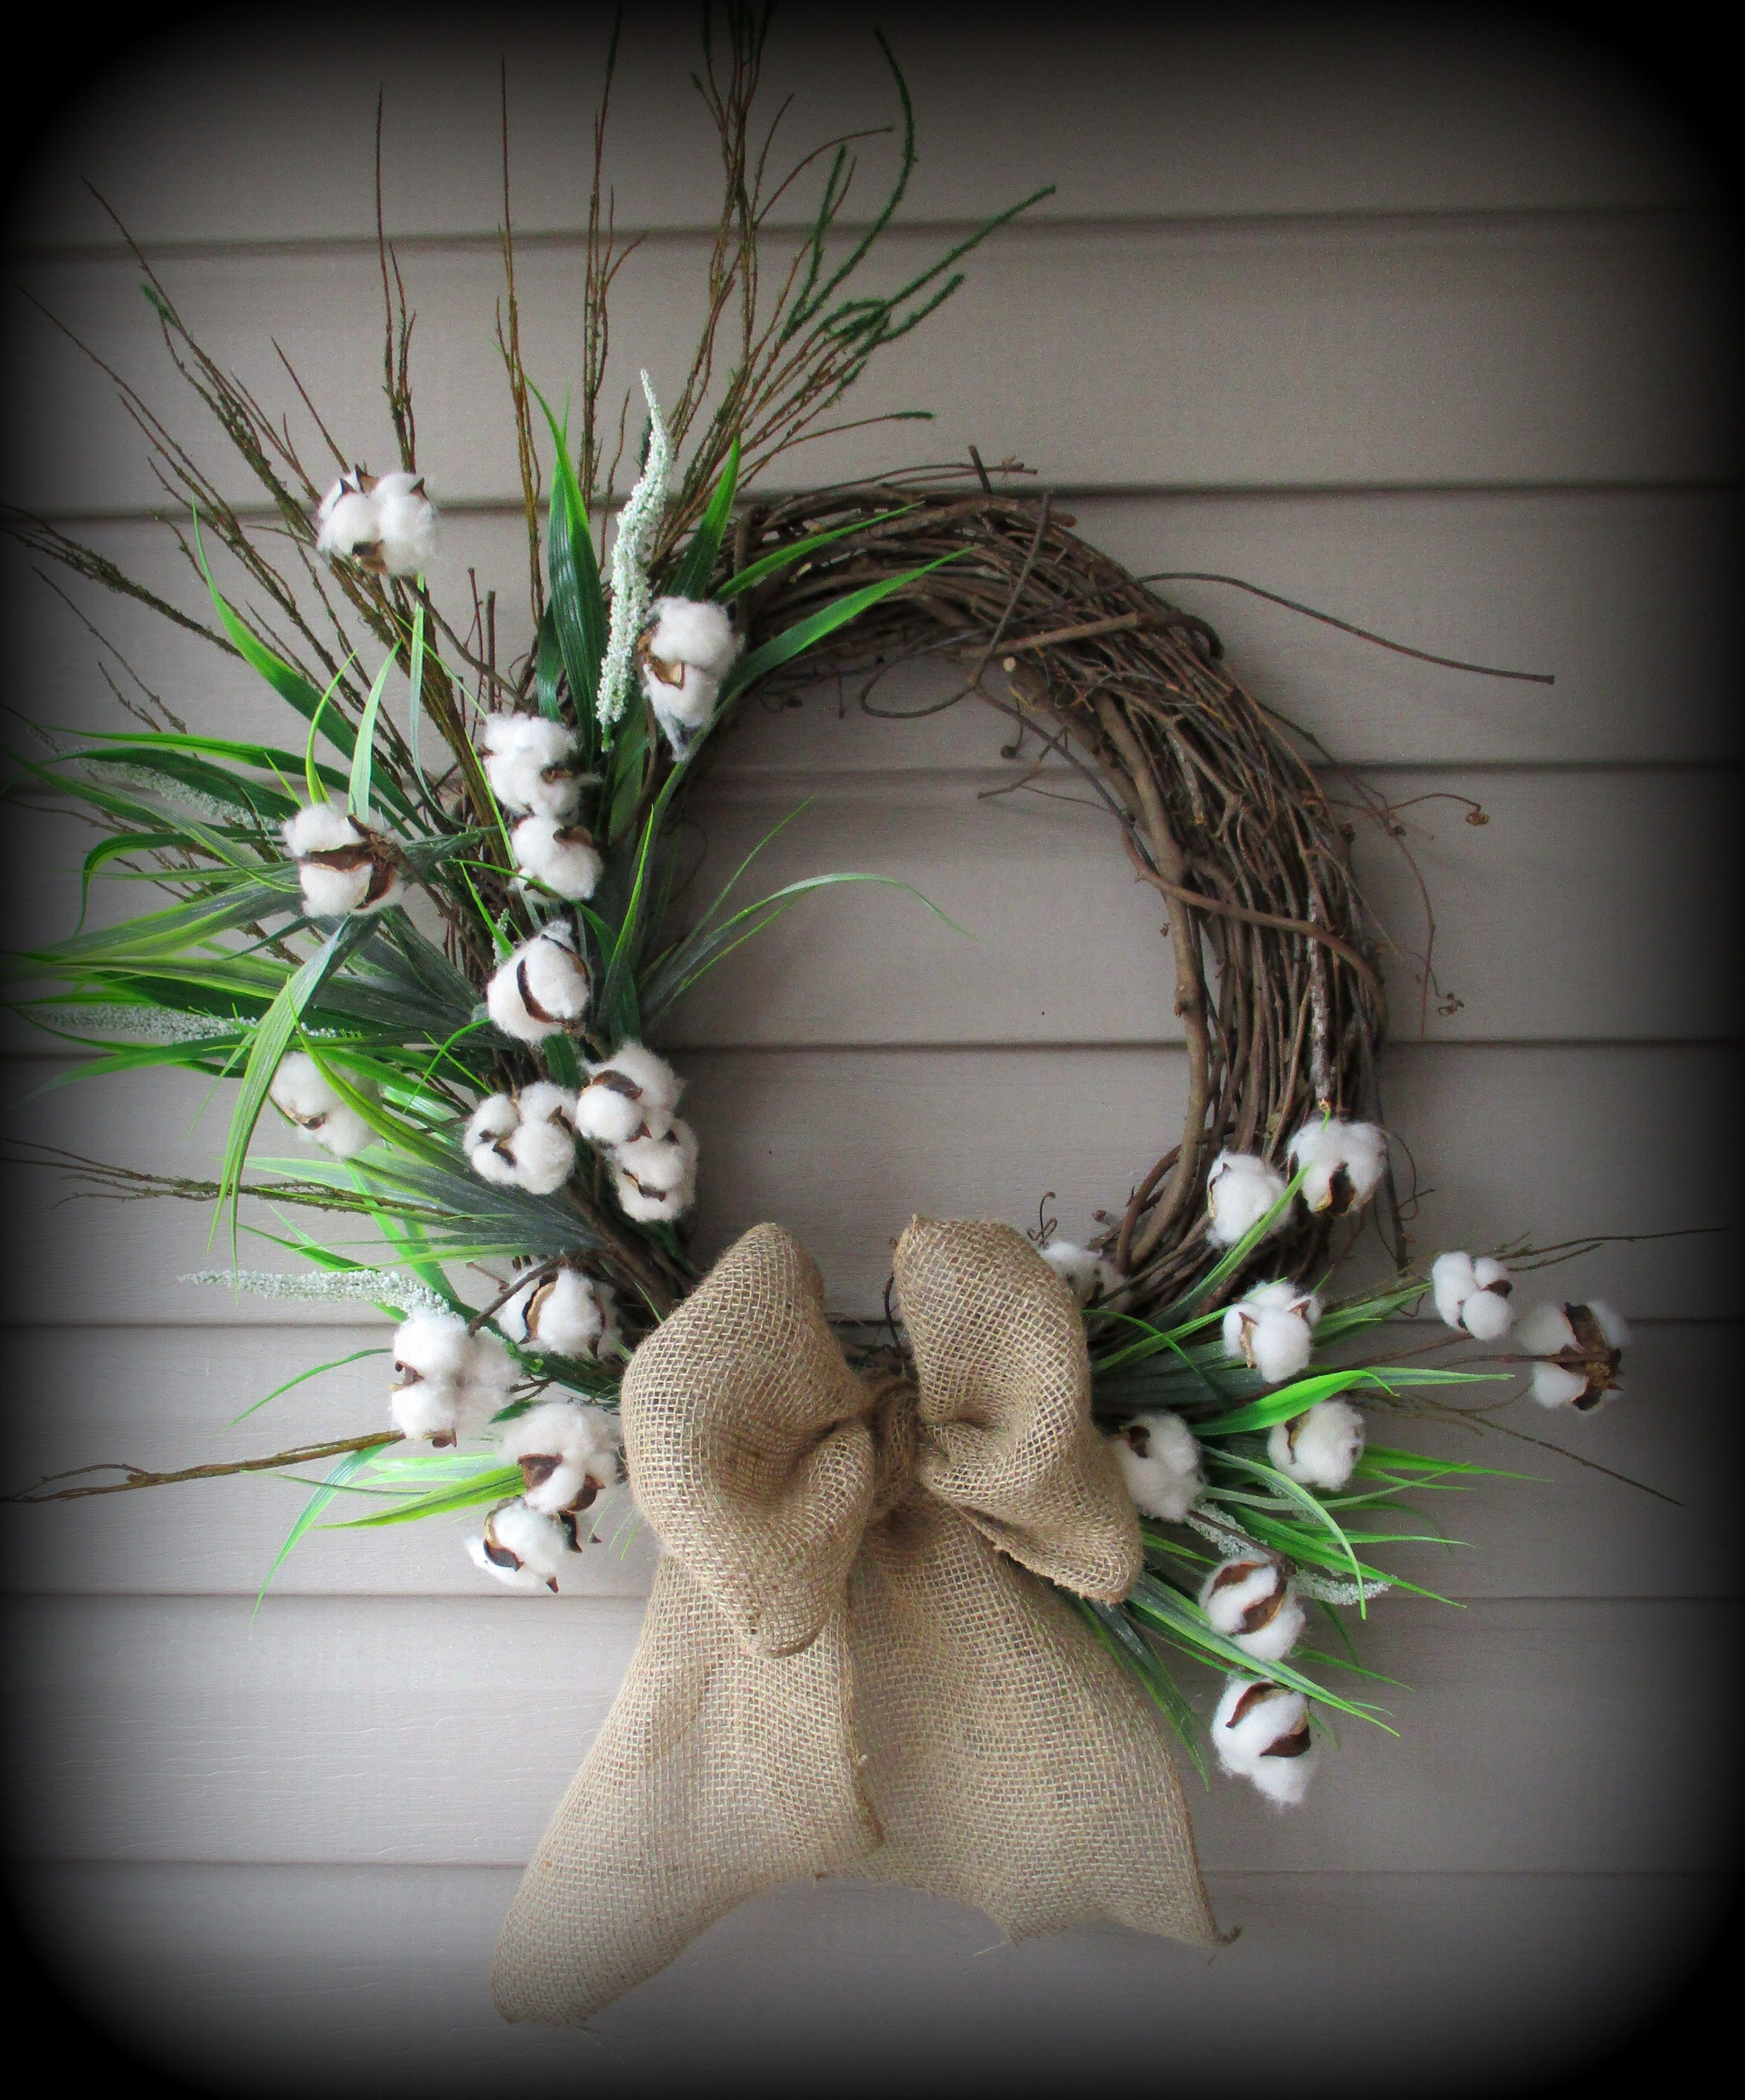 This Is For A Round Greenery Wreath With Cotton Ball Stems And Burlap Bow 24 With Images Wreath Designs Wreaths